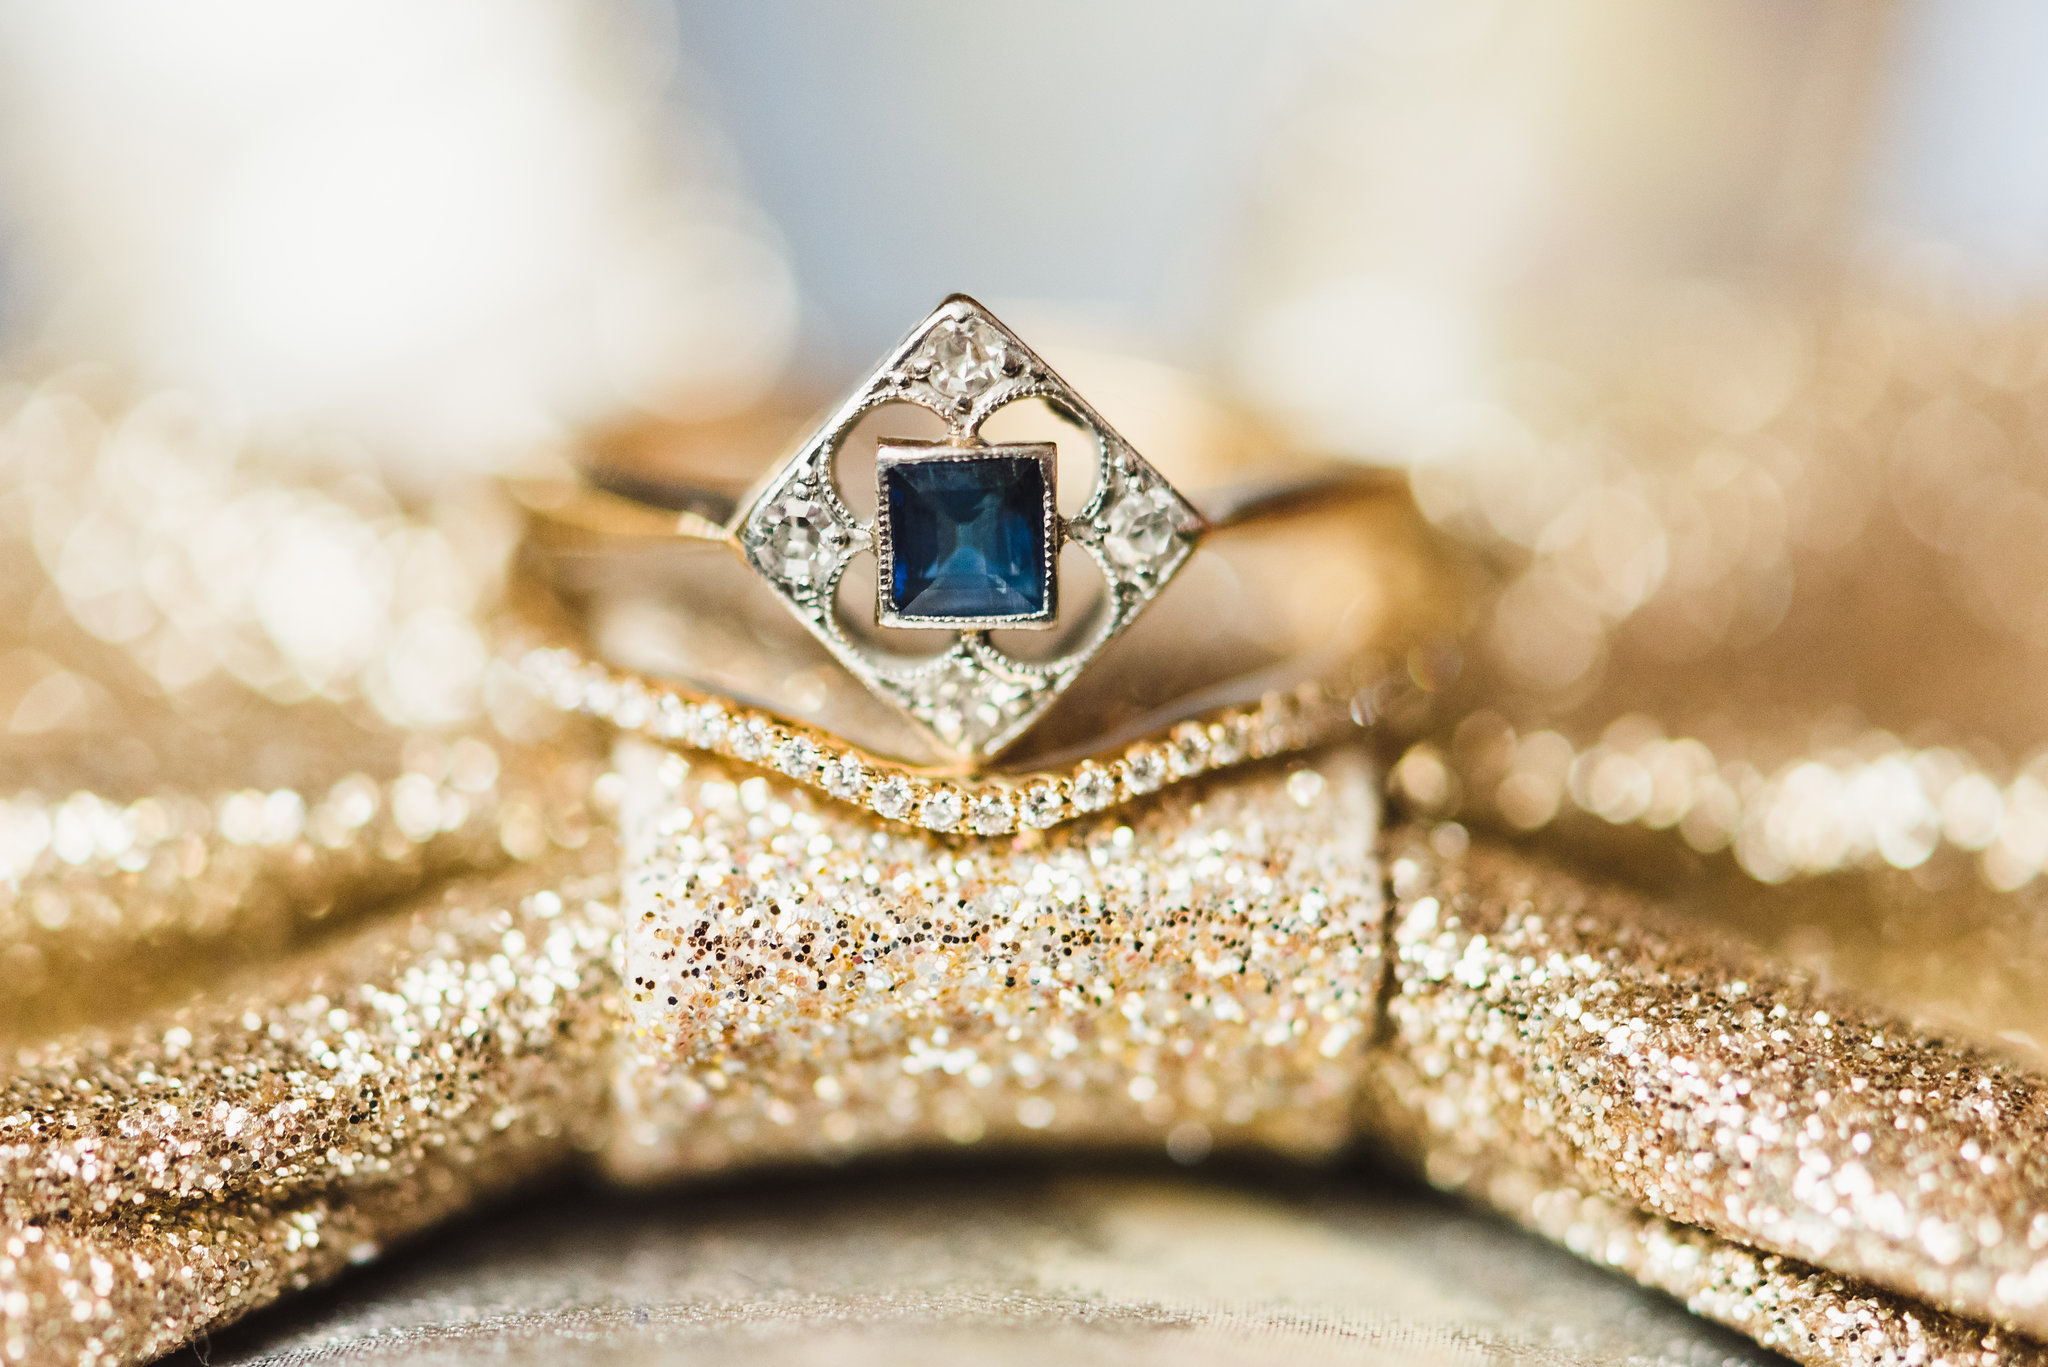 vintage silver and blue sapphire square ring on gold jewel bow Toronto wedding photographer Gillian Foster